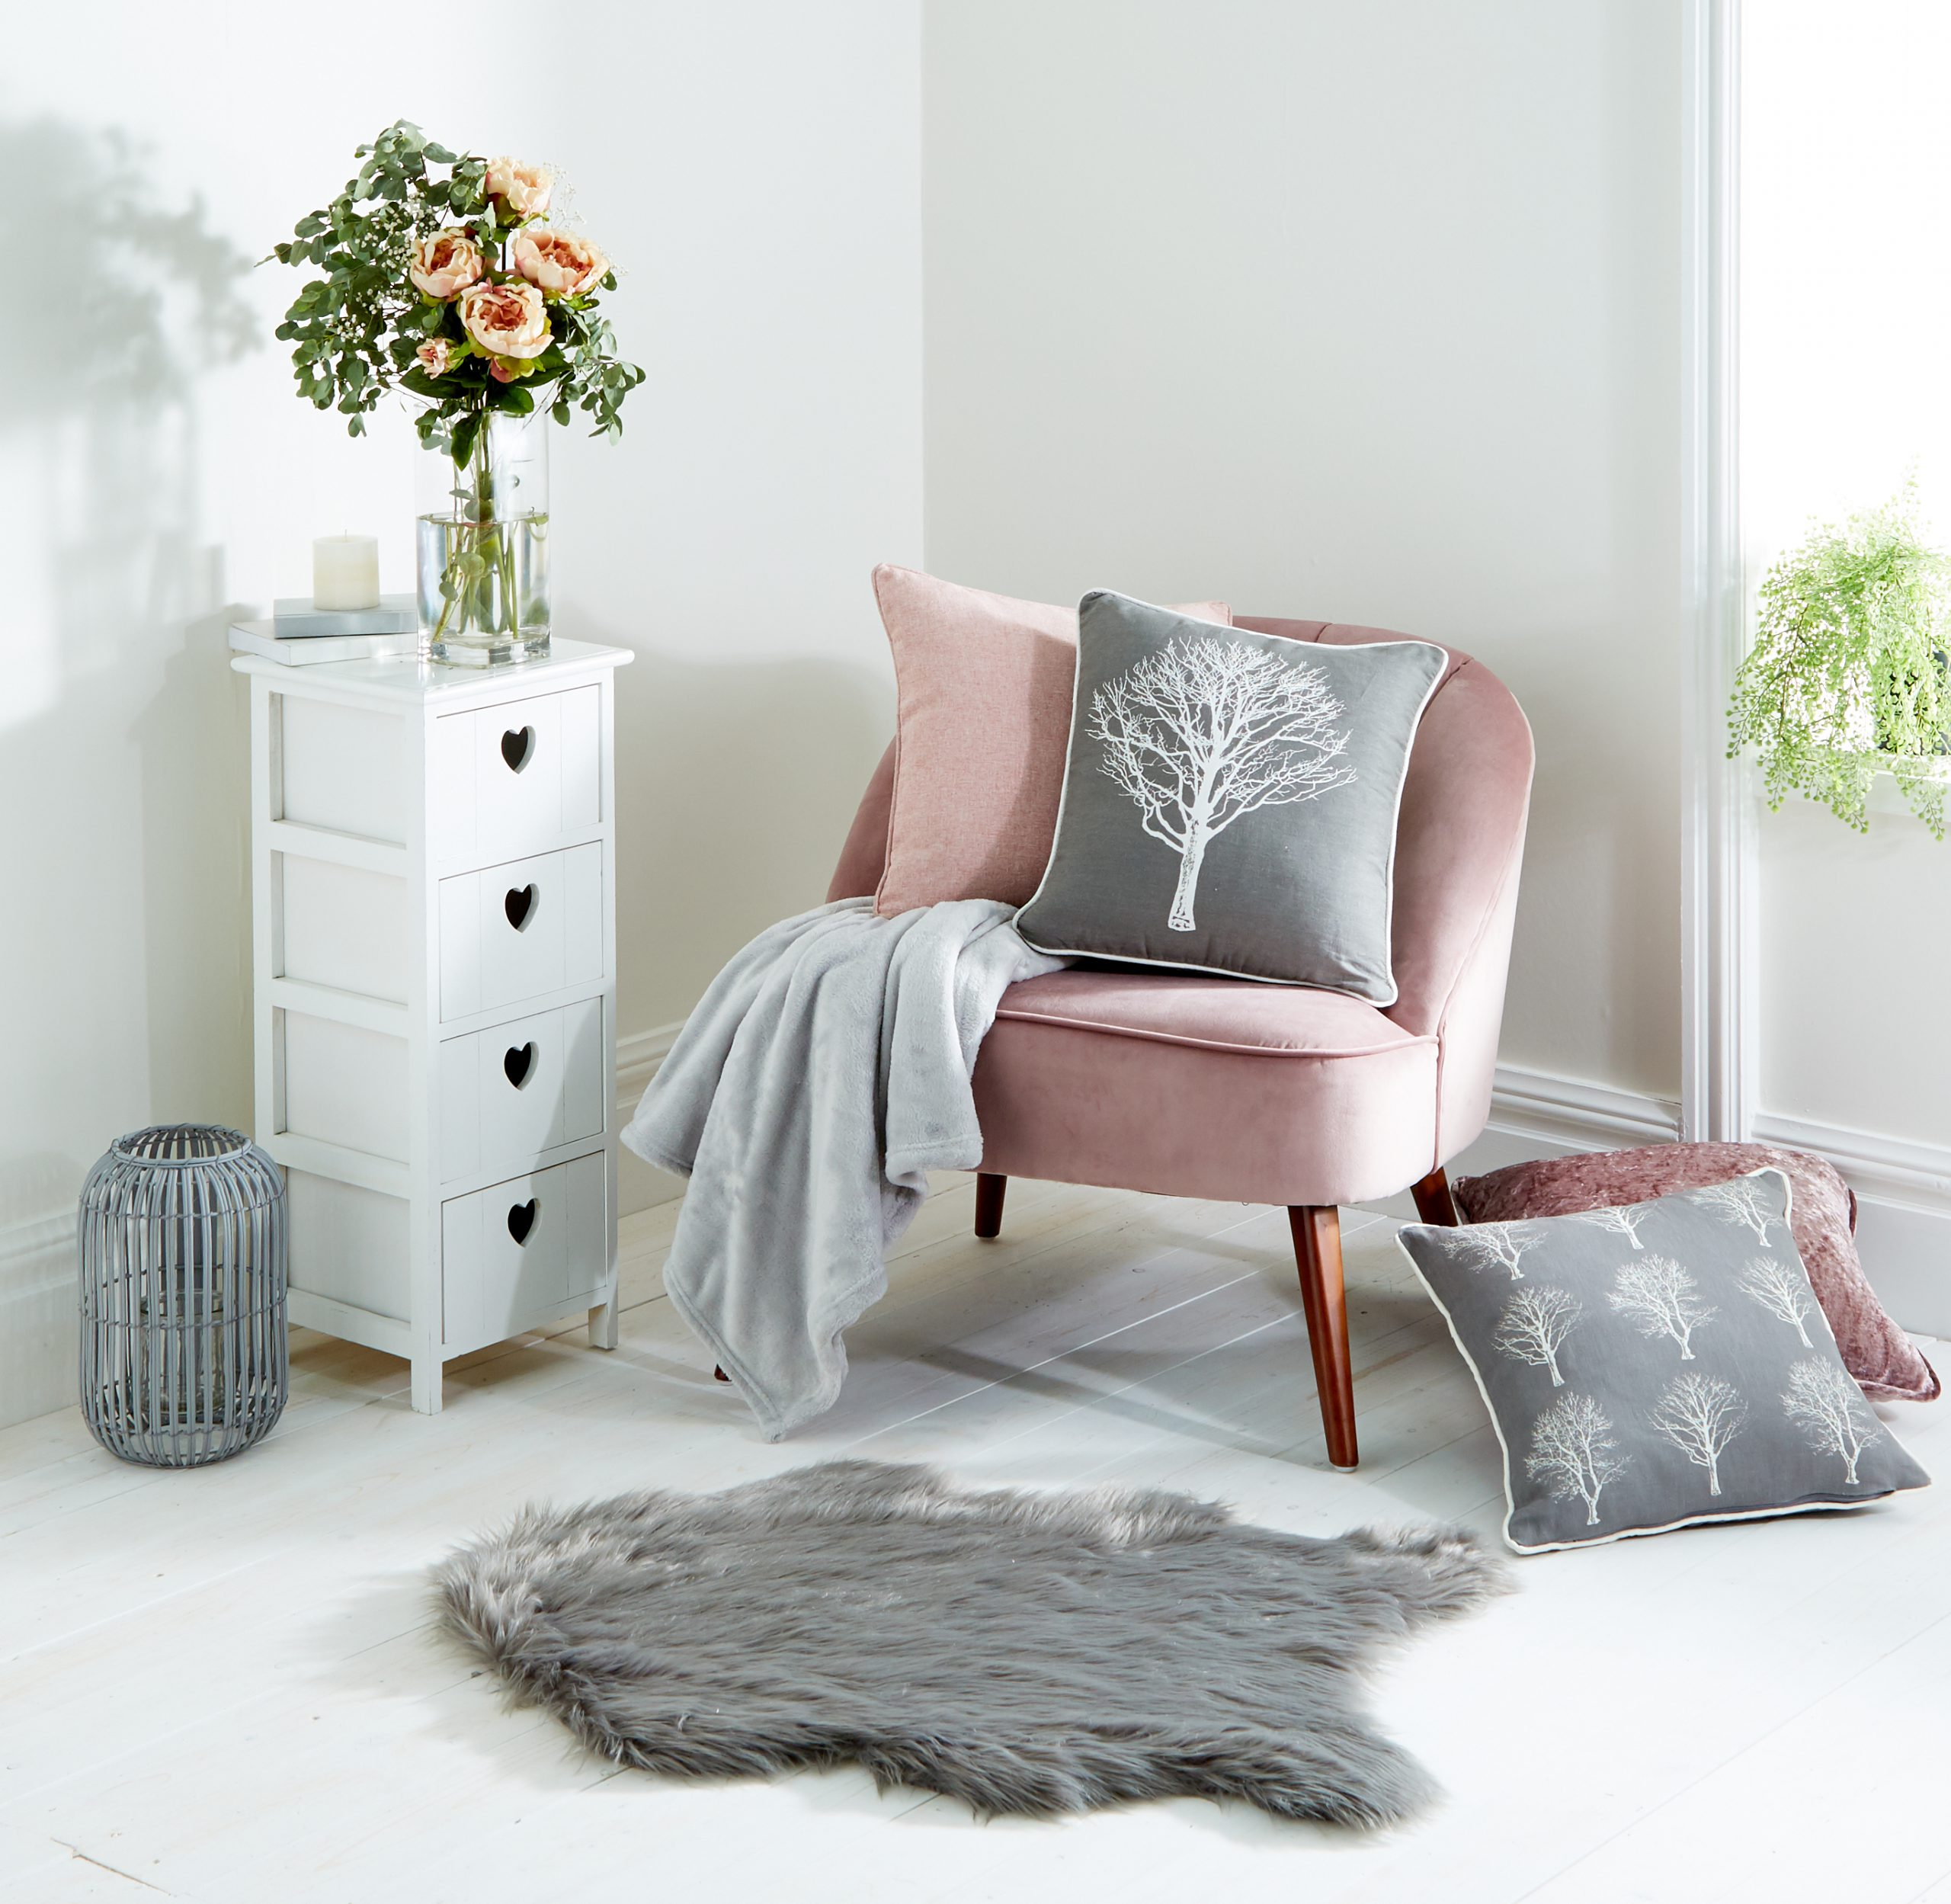 furniture and homeware photography